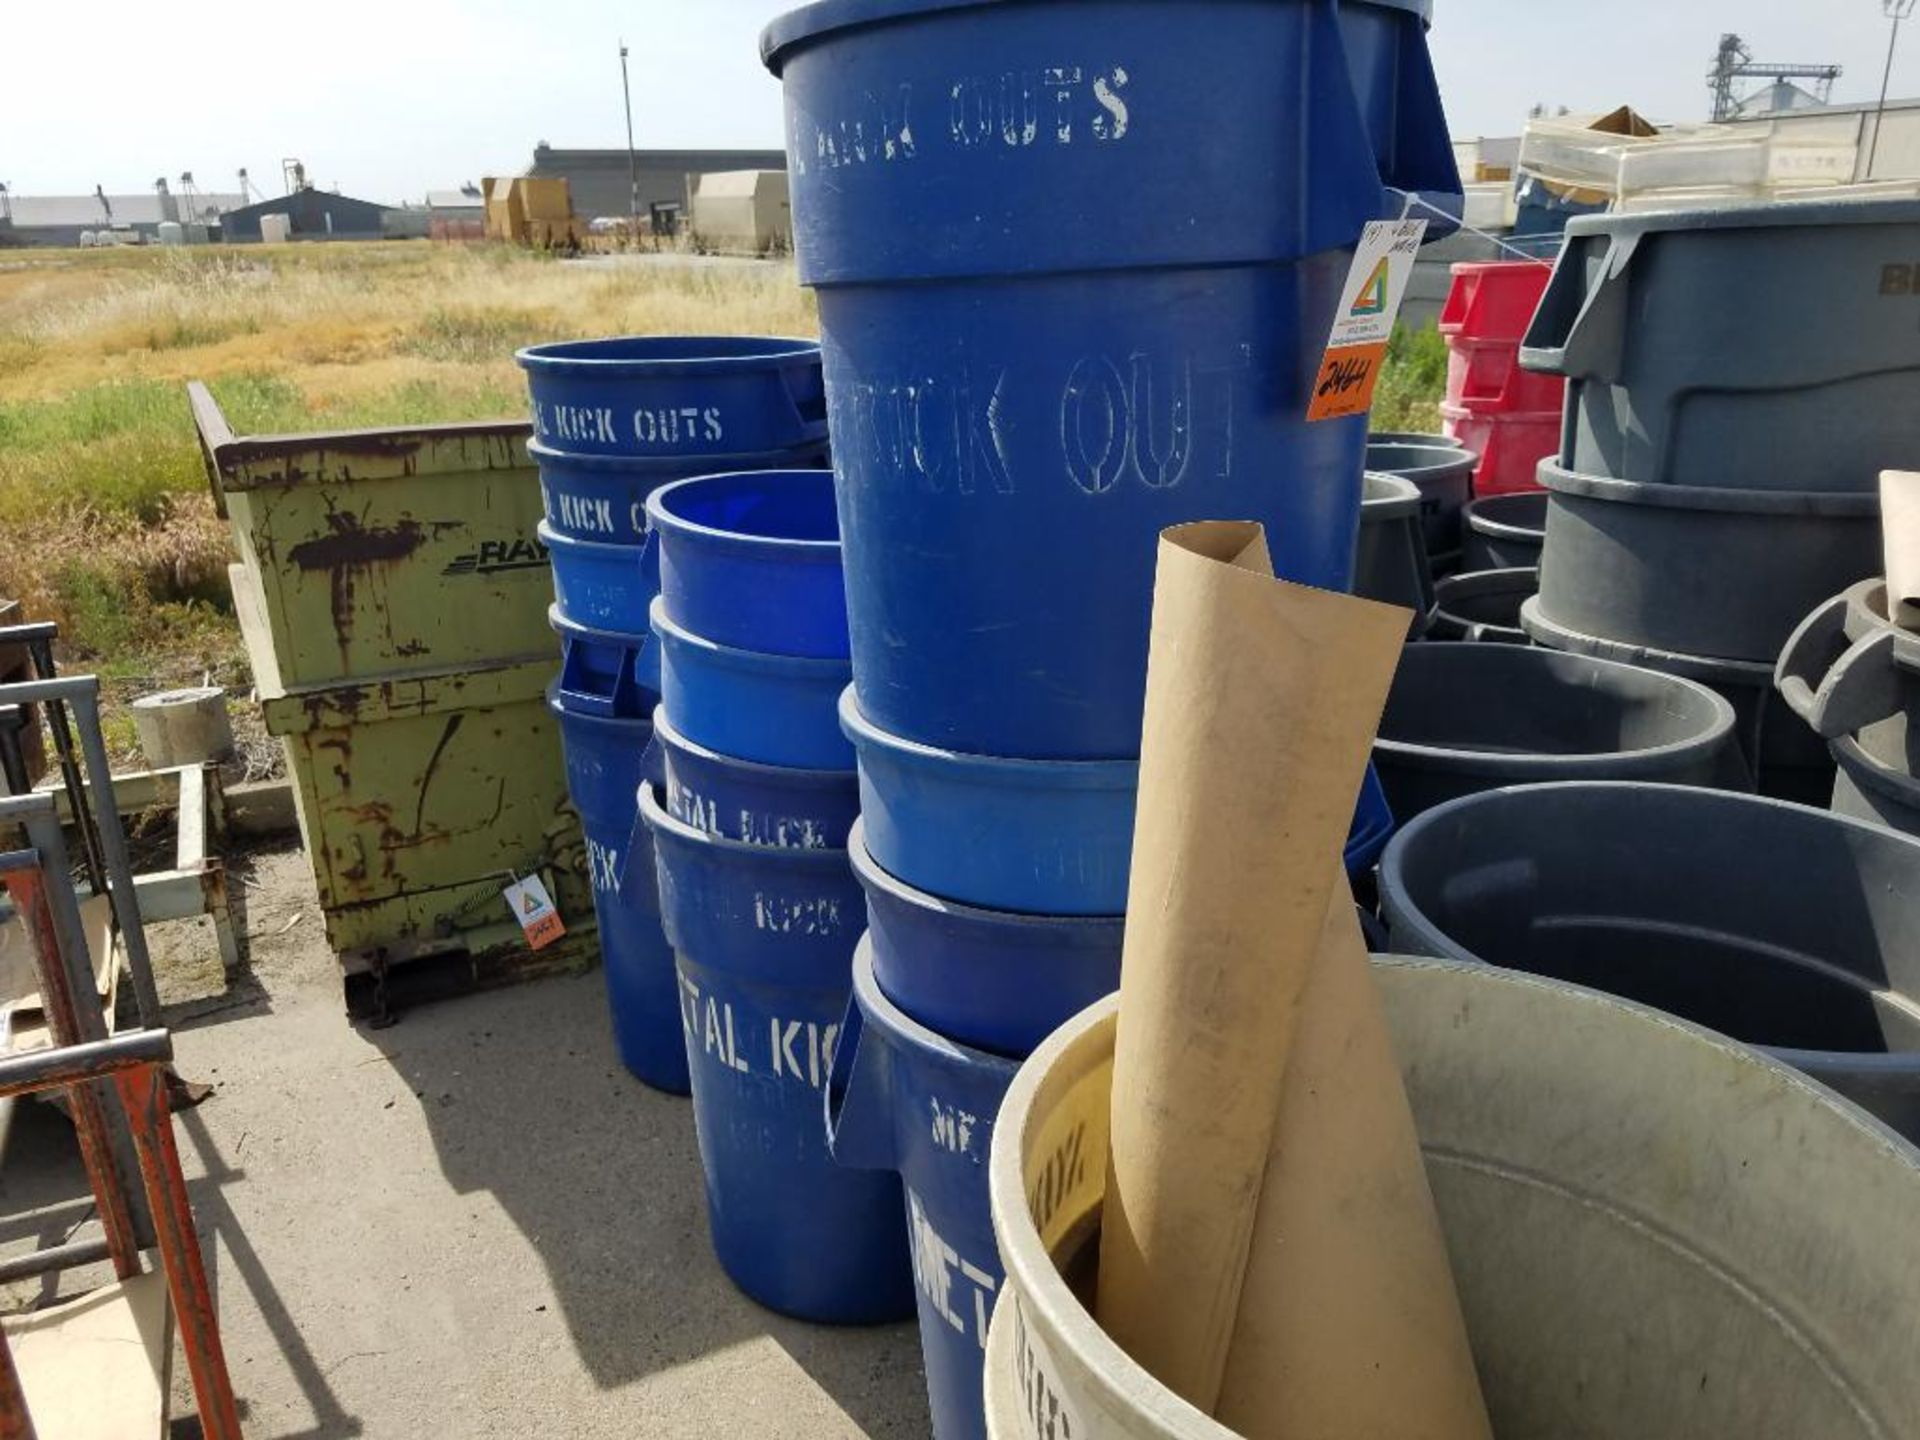 Brute blue and white garbage cans - Image 2 of 2